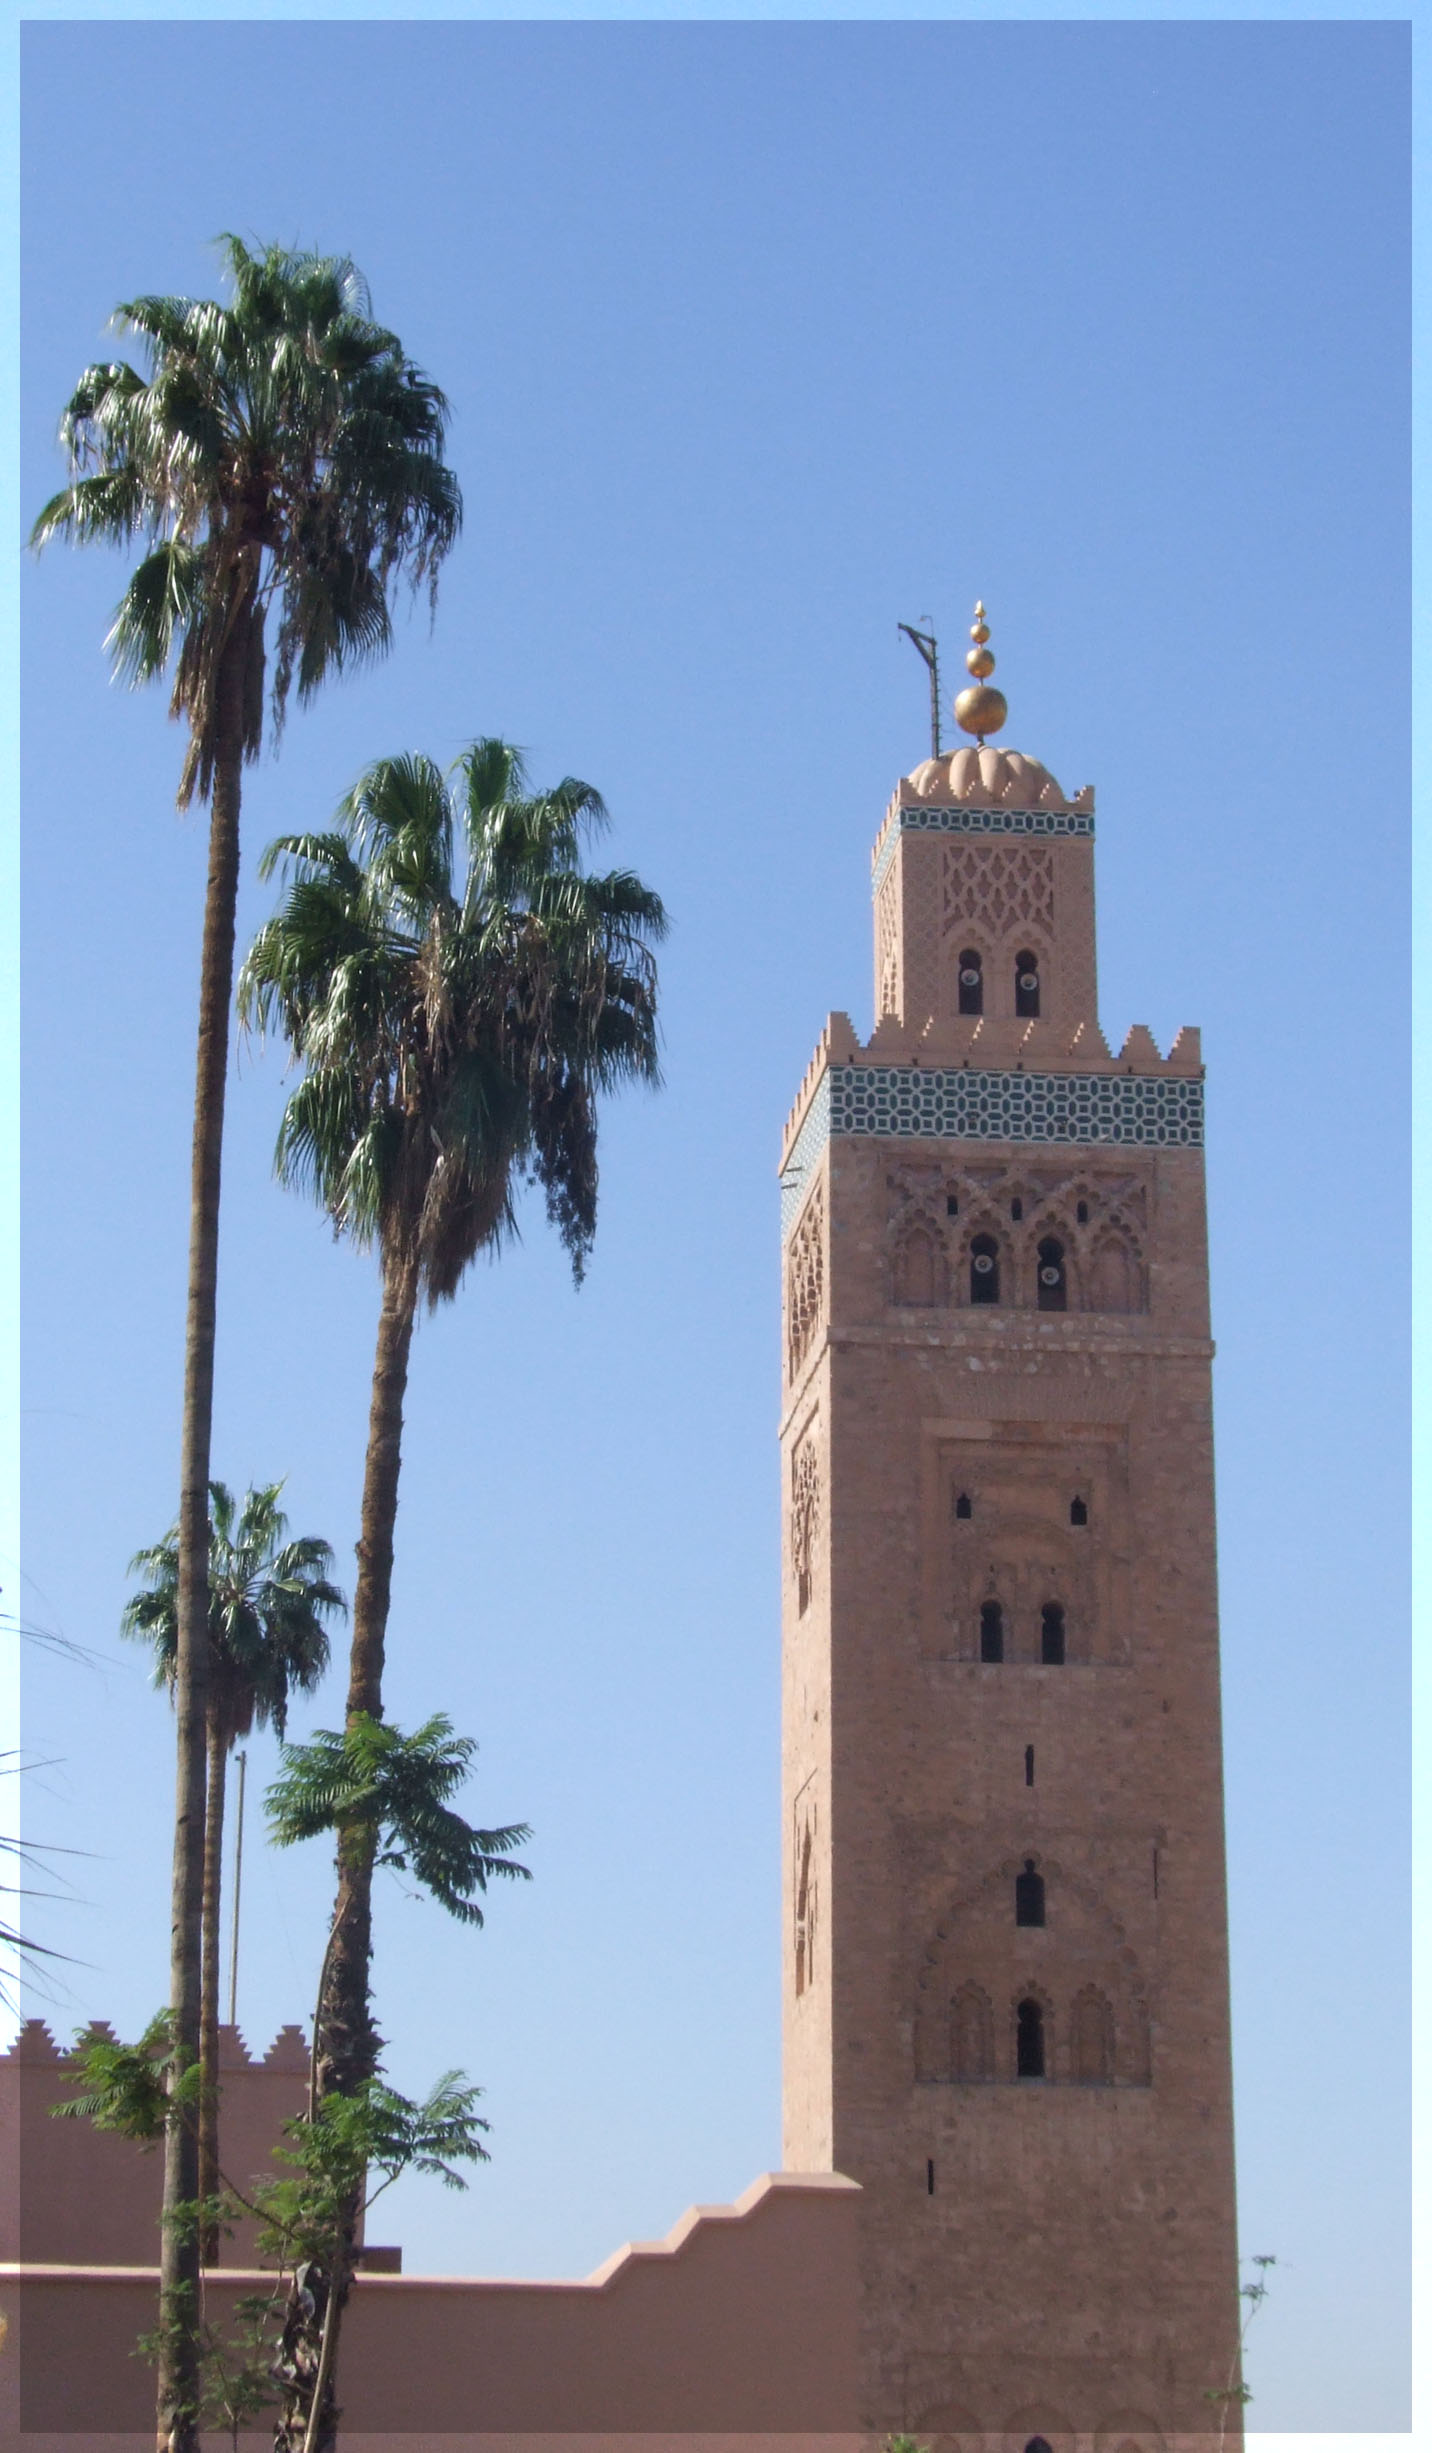 Tall square minaret and palm trees